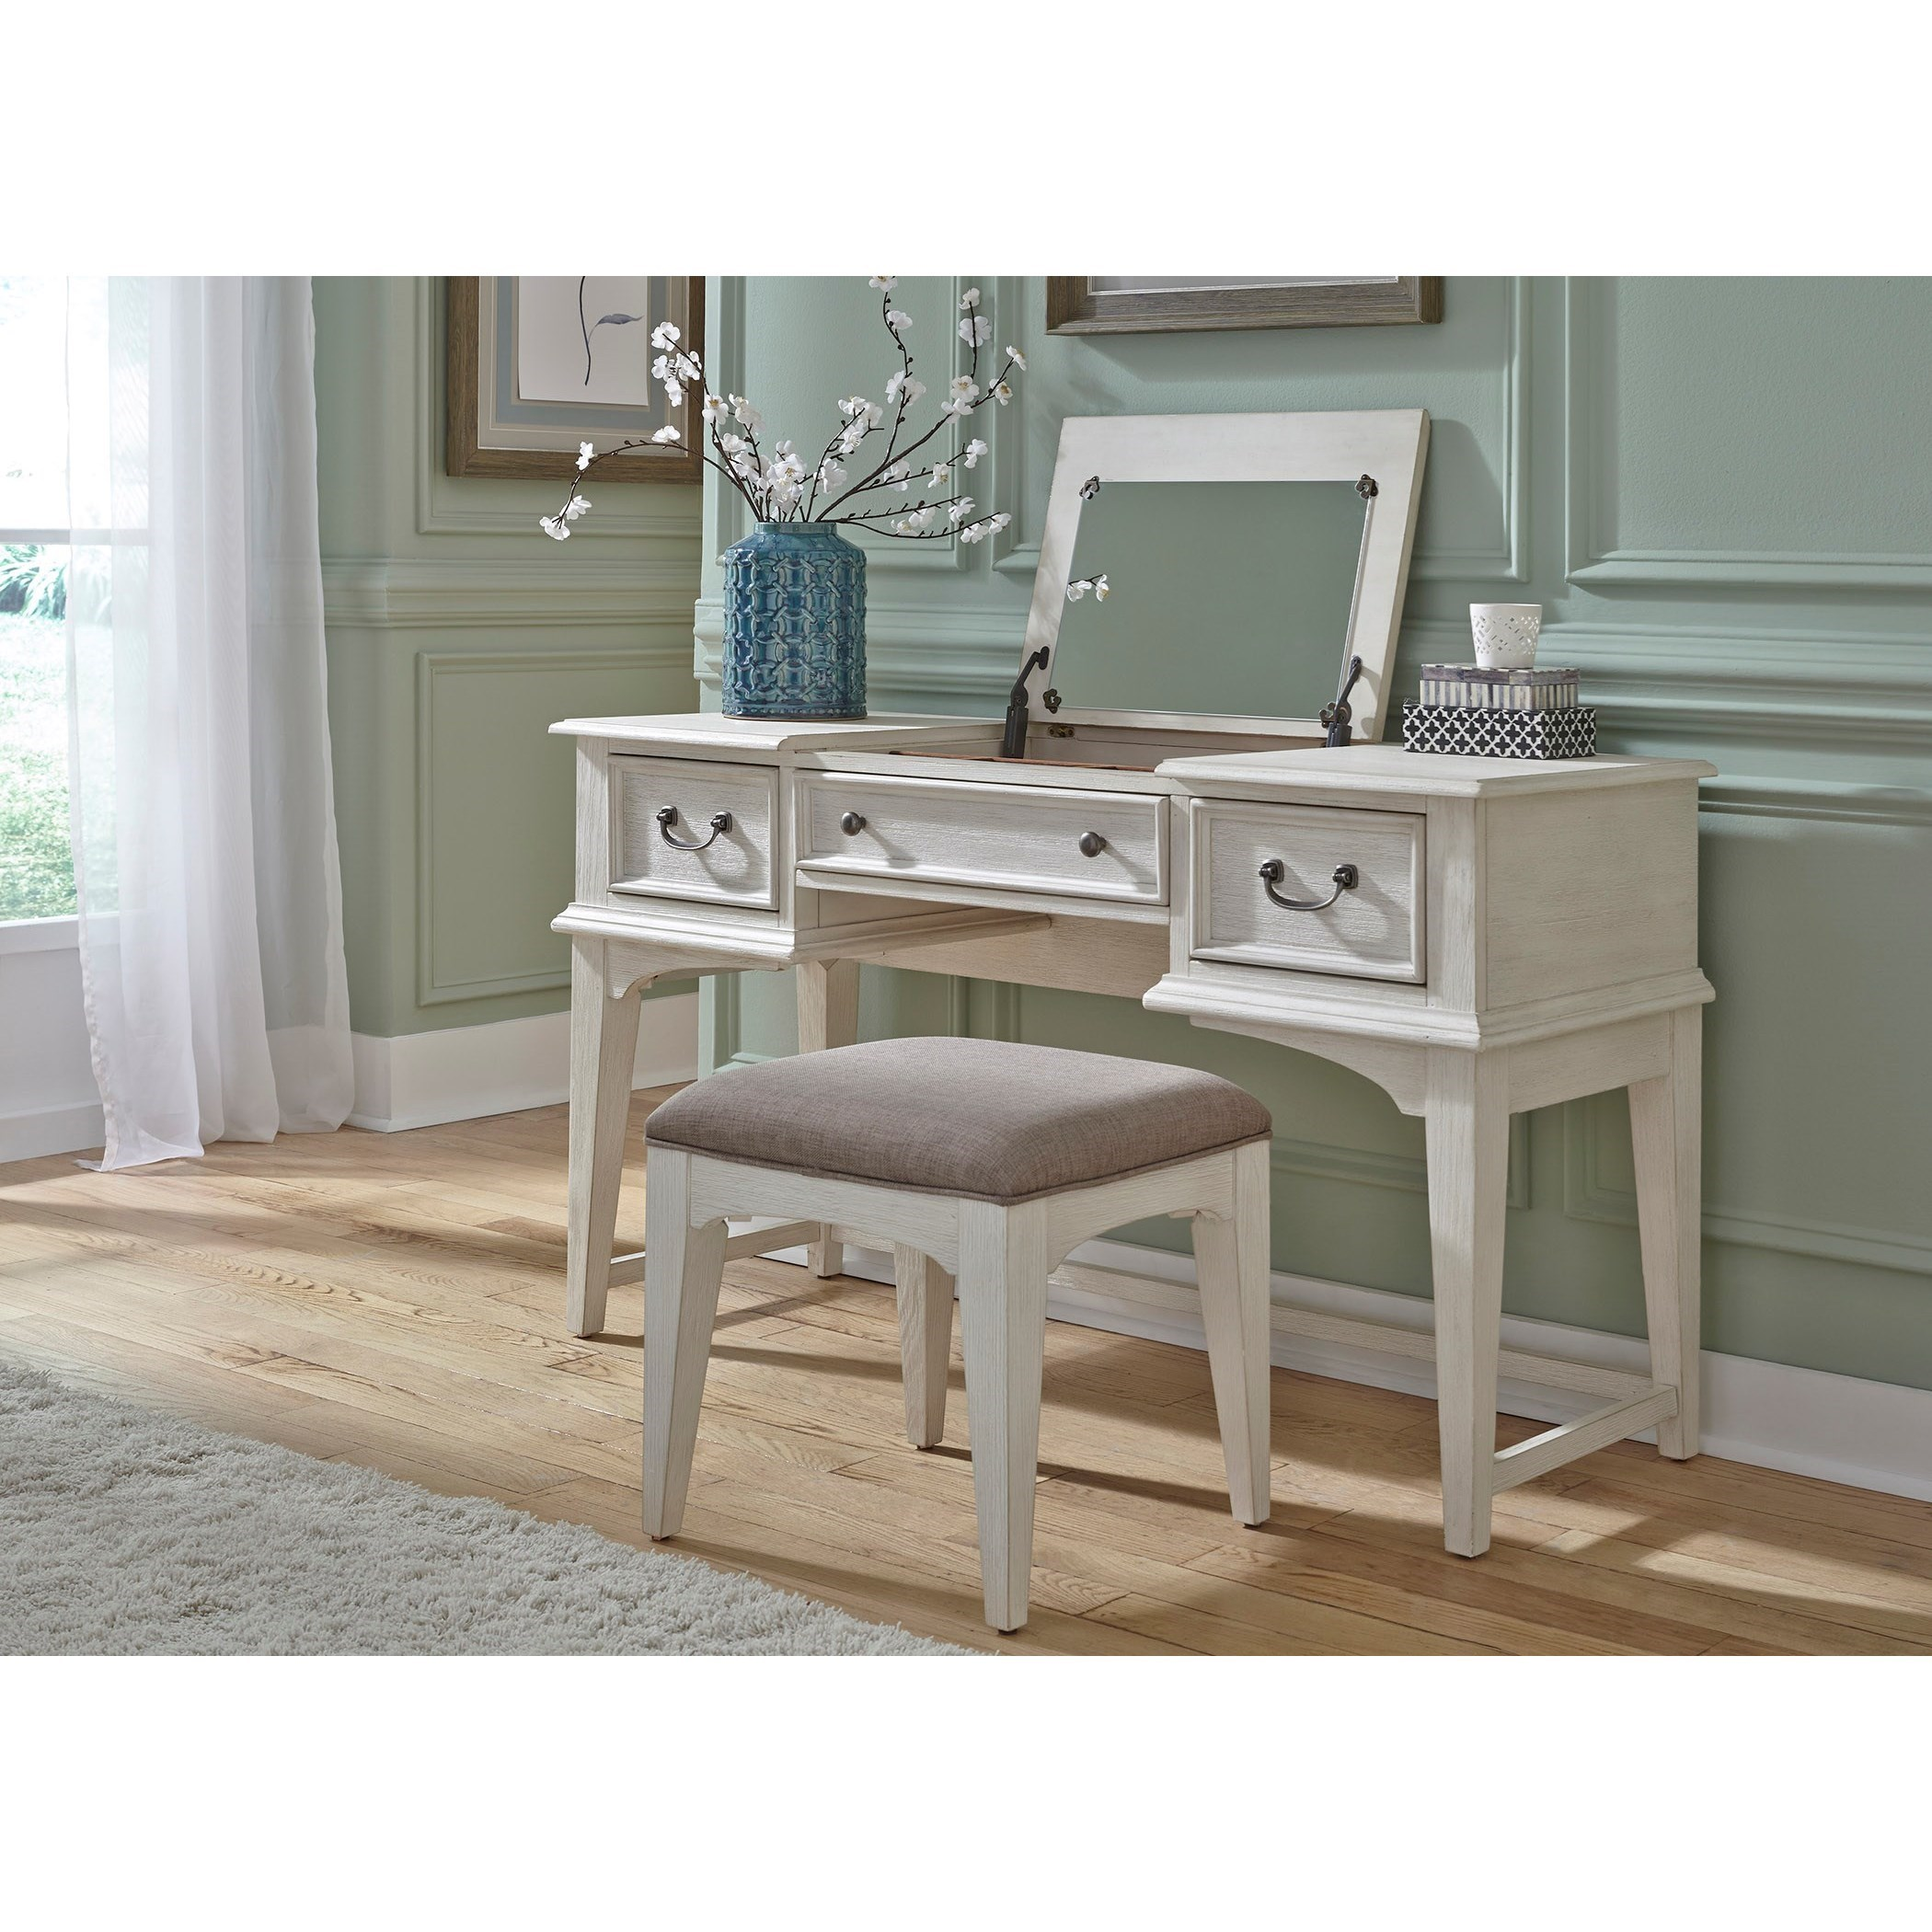 Liberty Furniture Bayside Bedroom Transitional Vanity With Lift Top Jewelry Storage And Bench Royal Furniture Vanities Vanity Sets